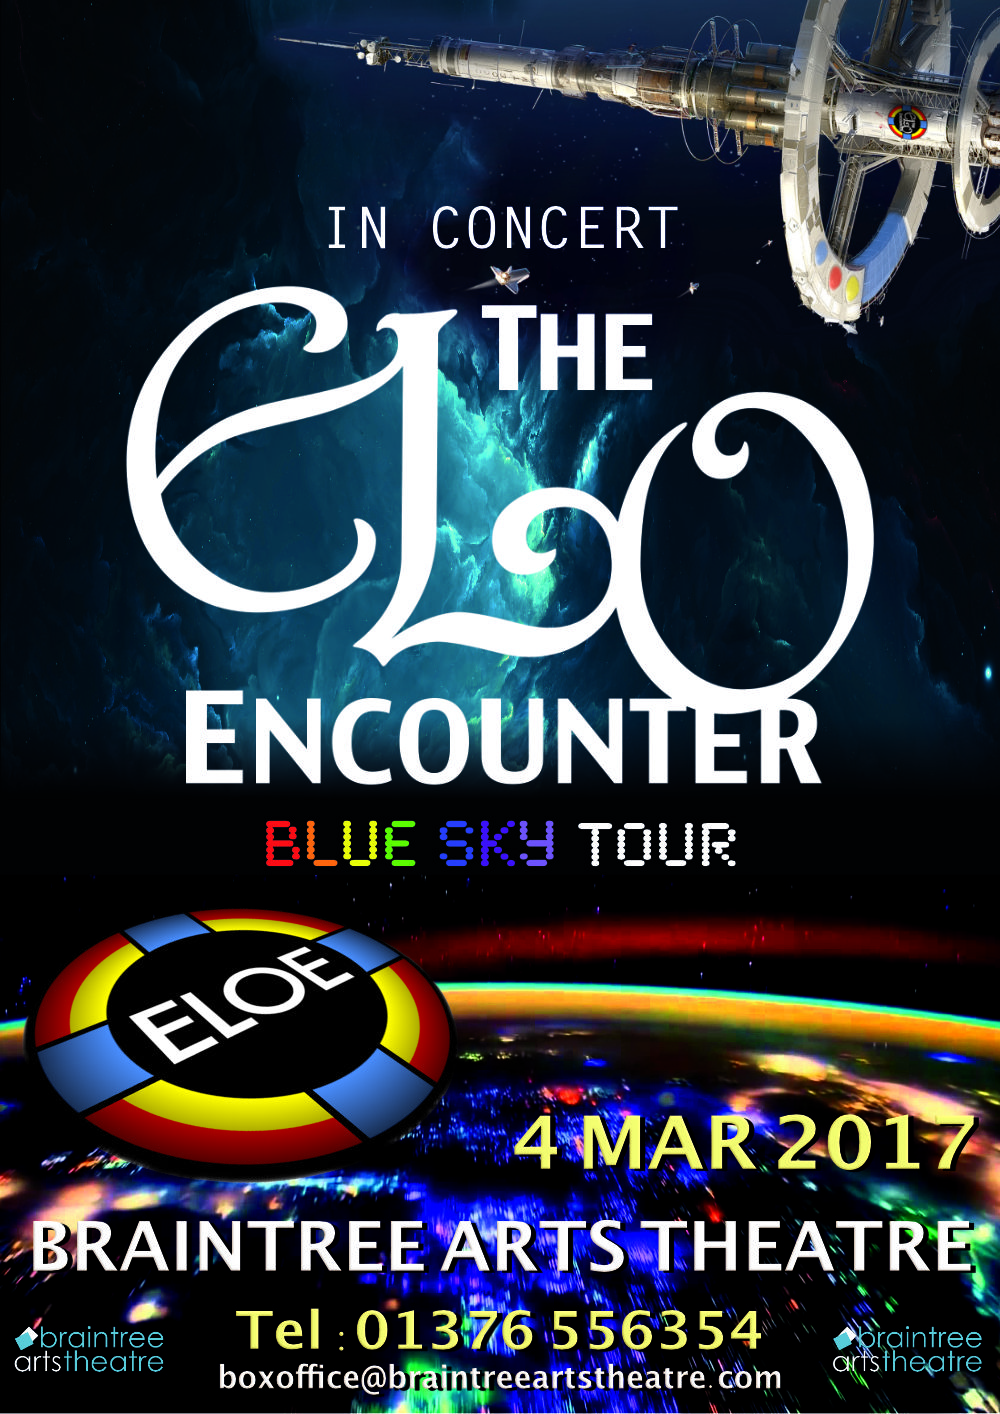 Braintree Arts - ELO Encounter Poster